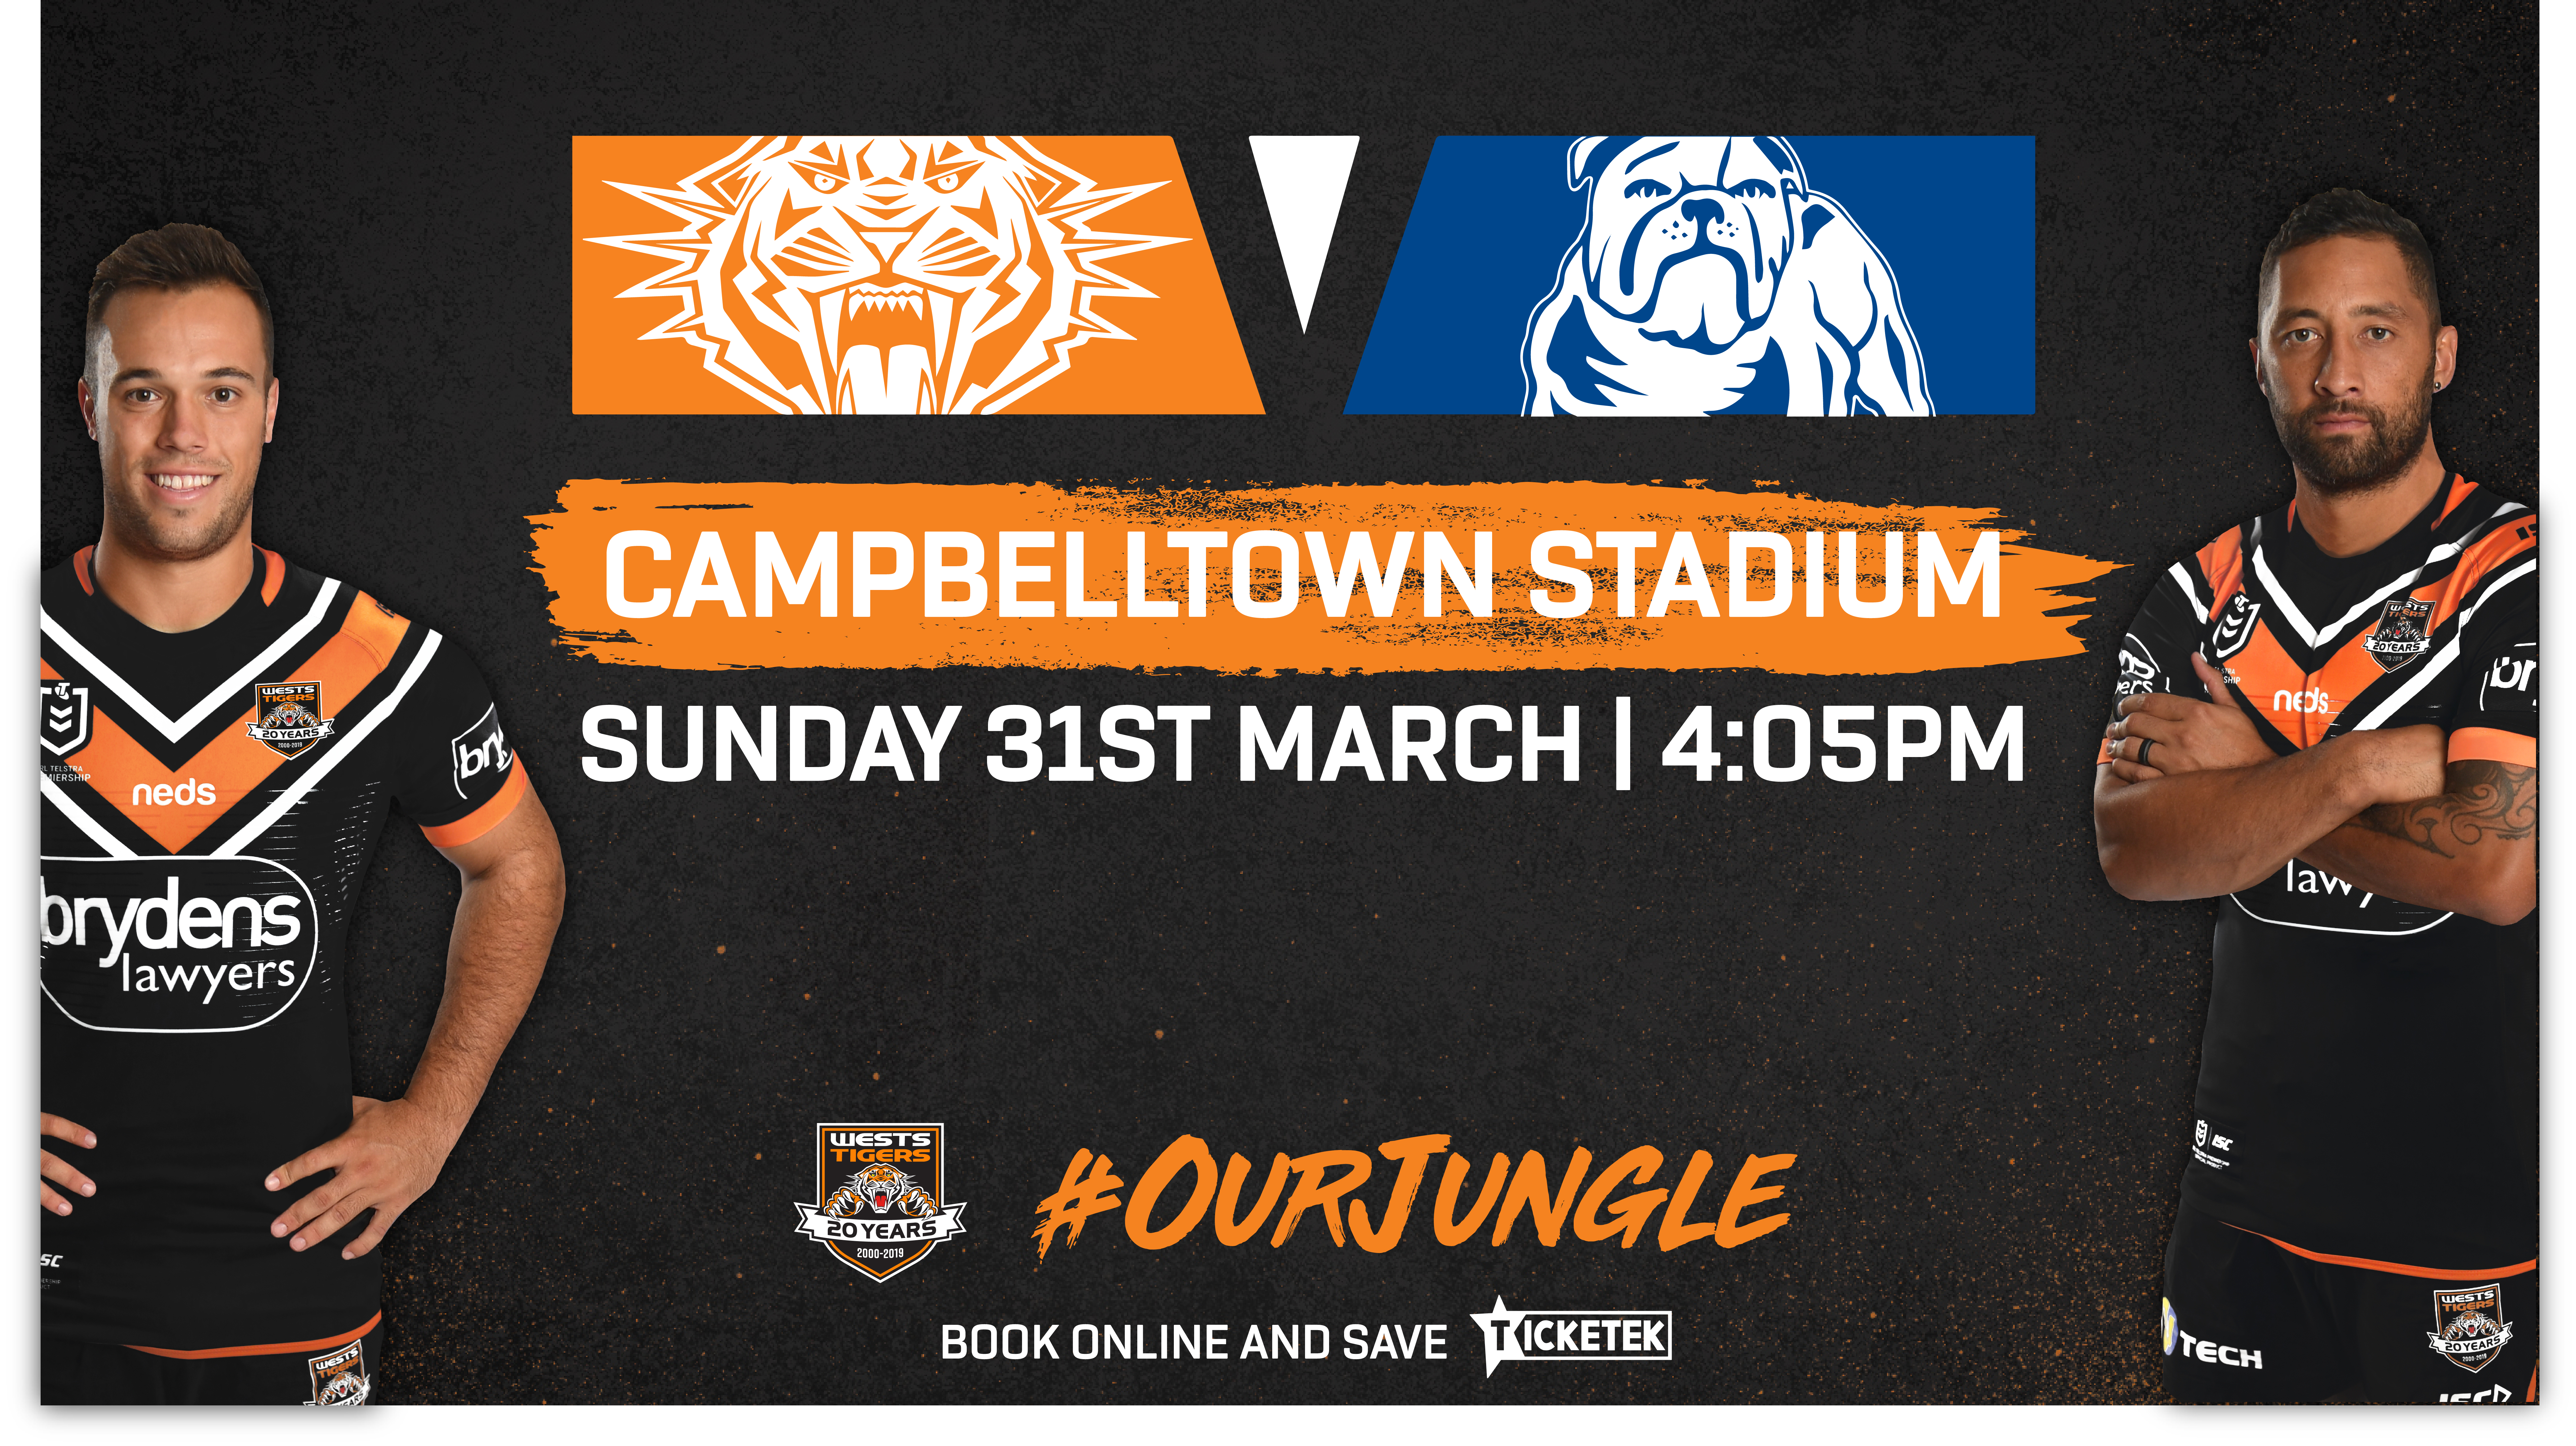 Nrl Round 3 Wests Tigers V Bulldogs Campbelltown City Council